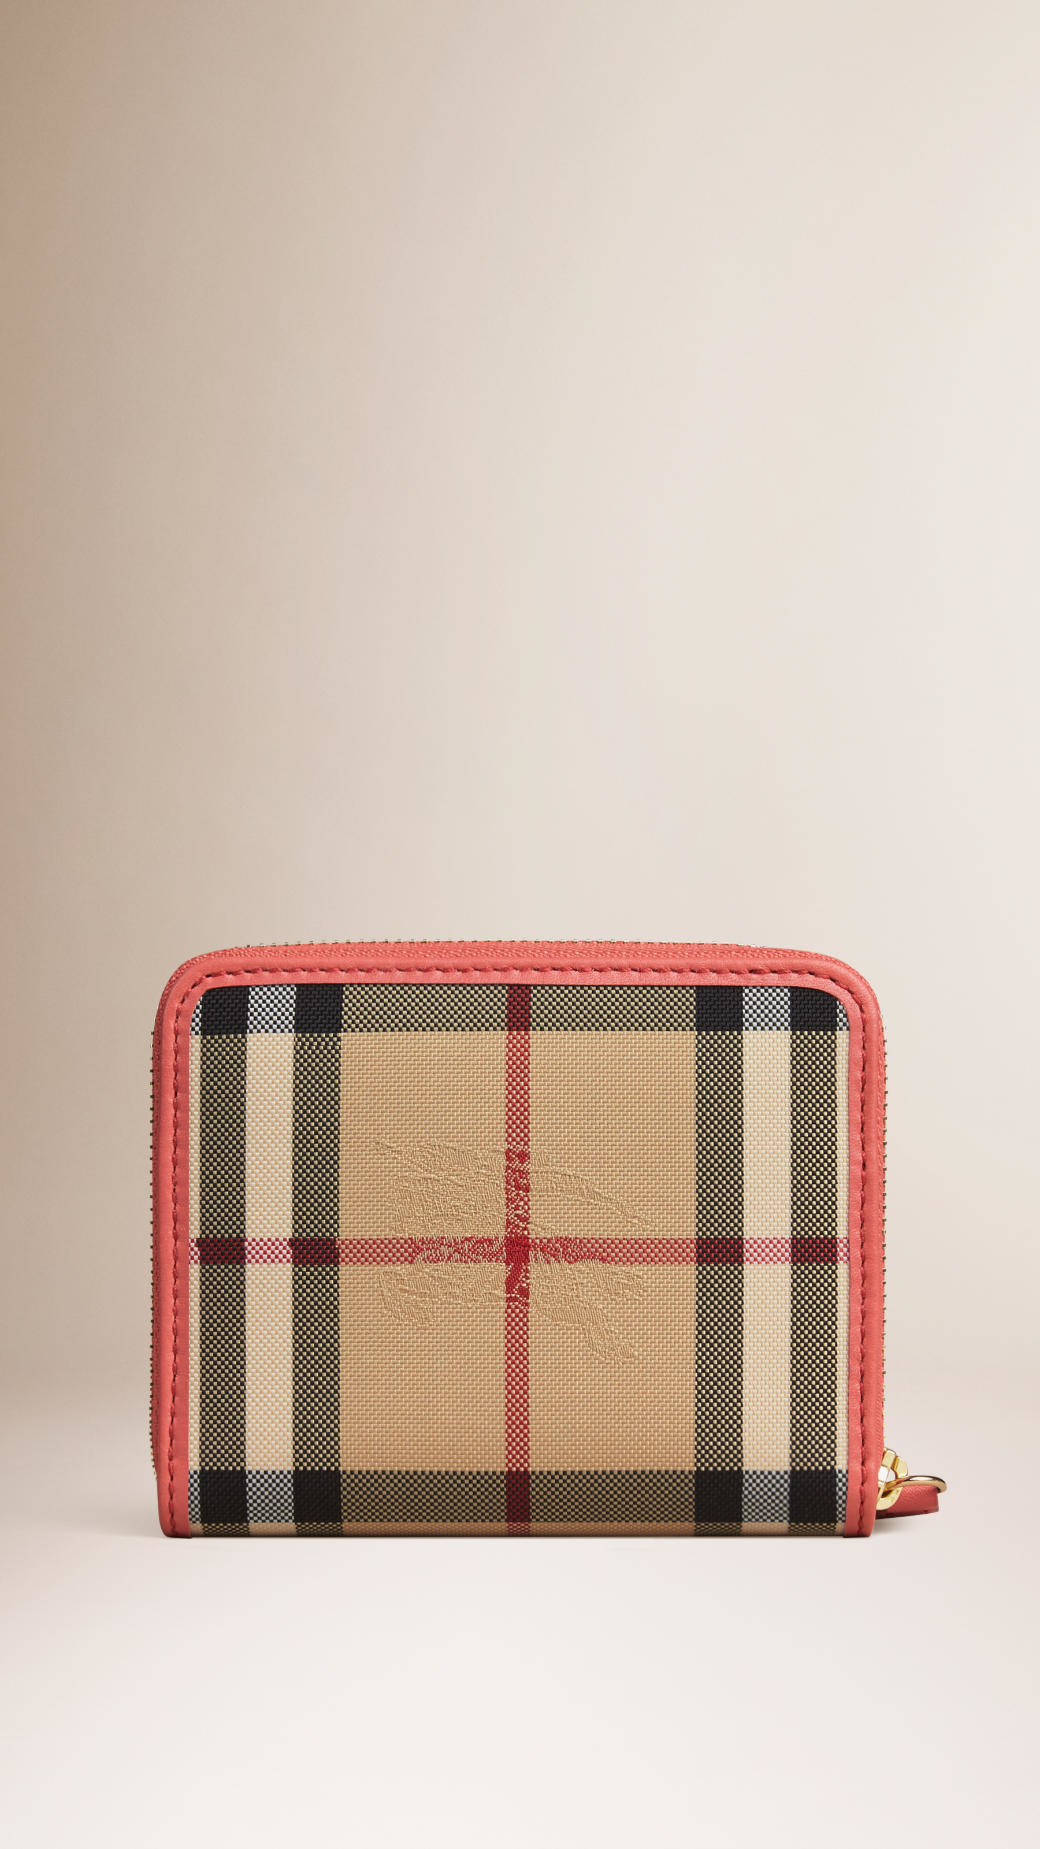 Lyst Burberry Horseferry Check And Leather Small